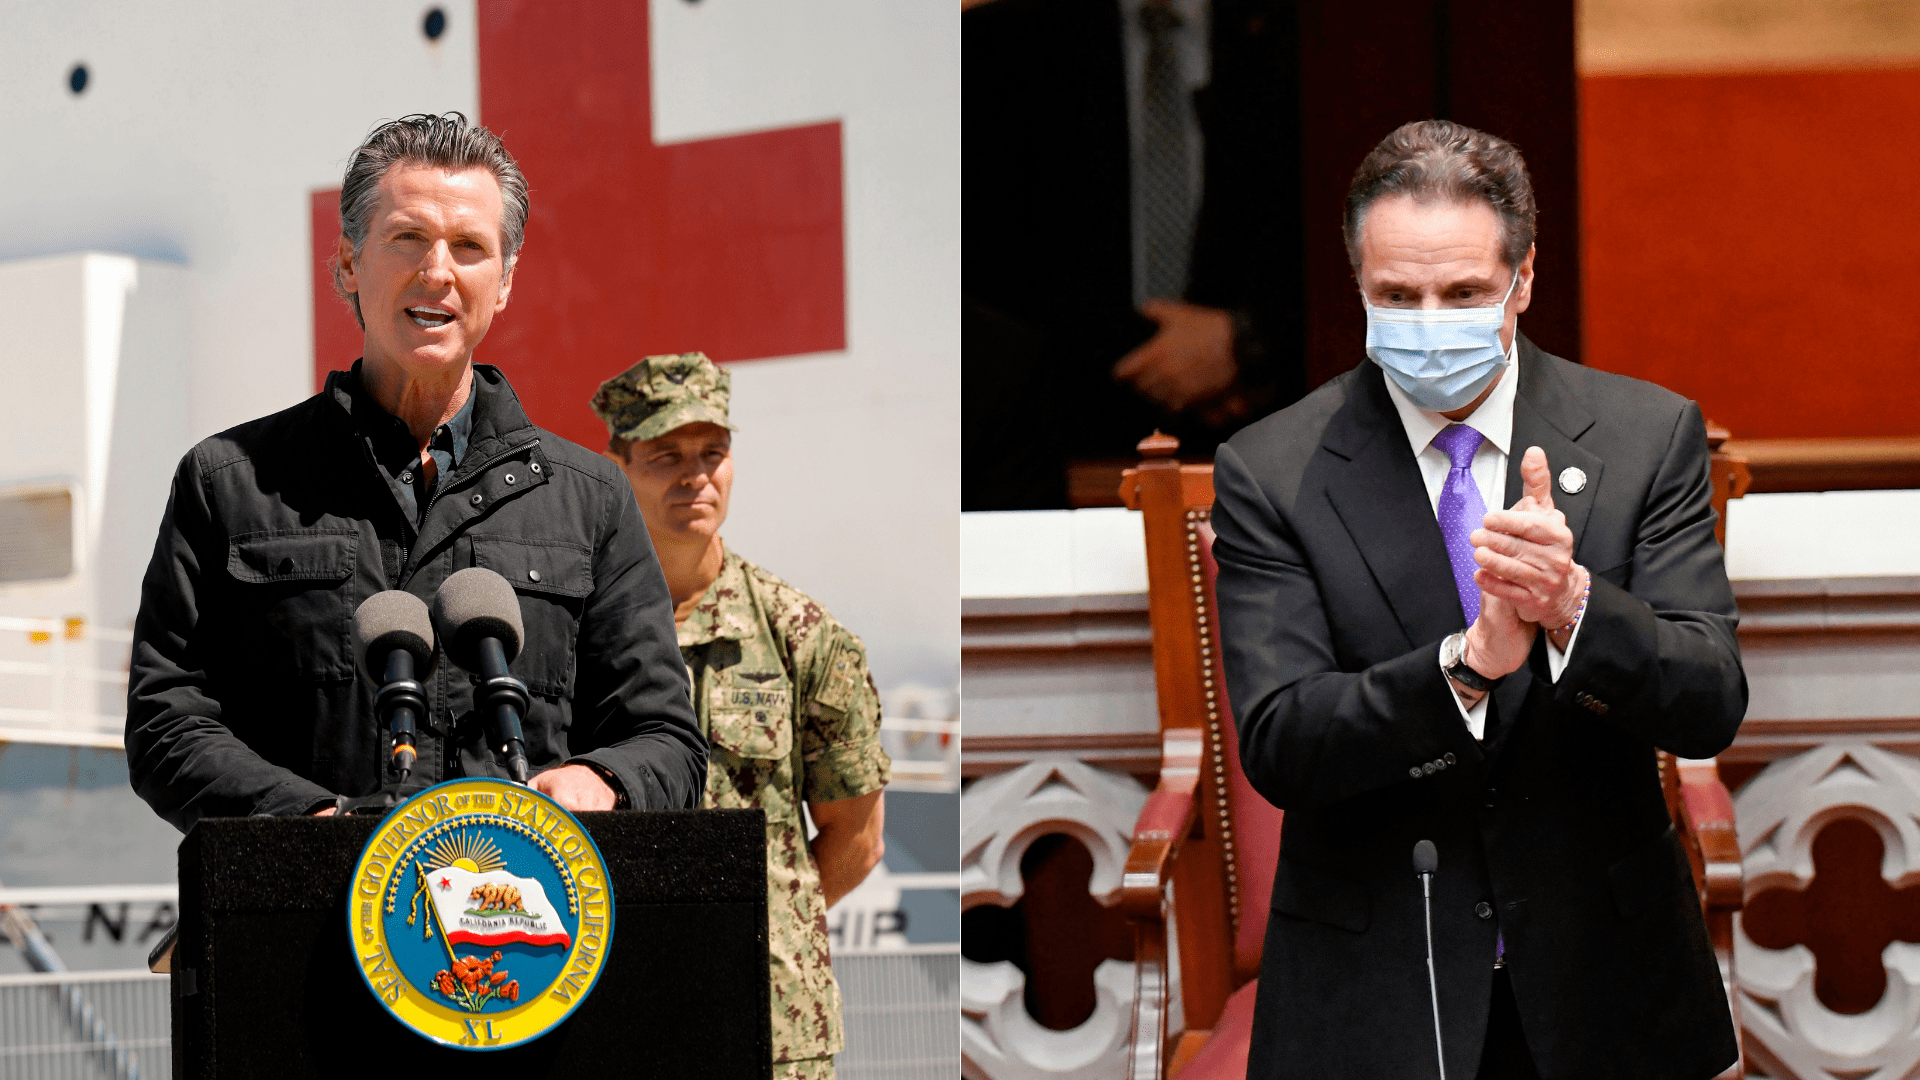 This combination image shows California Gov. Gavin Newsom in front of the hospital ship USNS Mercy after it arrived into the Port of Los Angeles on March 27, 2020 and New York Gov. Andrew Cuomo in the Assembly Chamber at the state Capitol in Albany, New York on Dec. 14, 2020. (CAROLYN COLE/POOL/AFP; HANS PENNINK/POOL/AFP Getty Images)